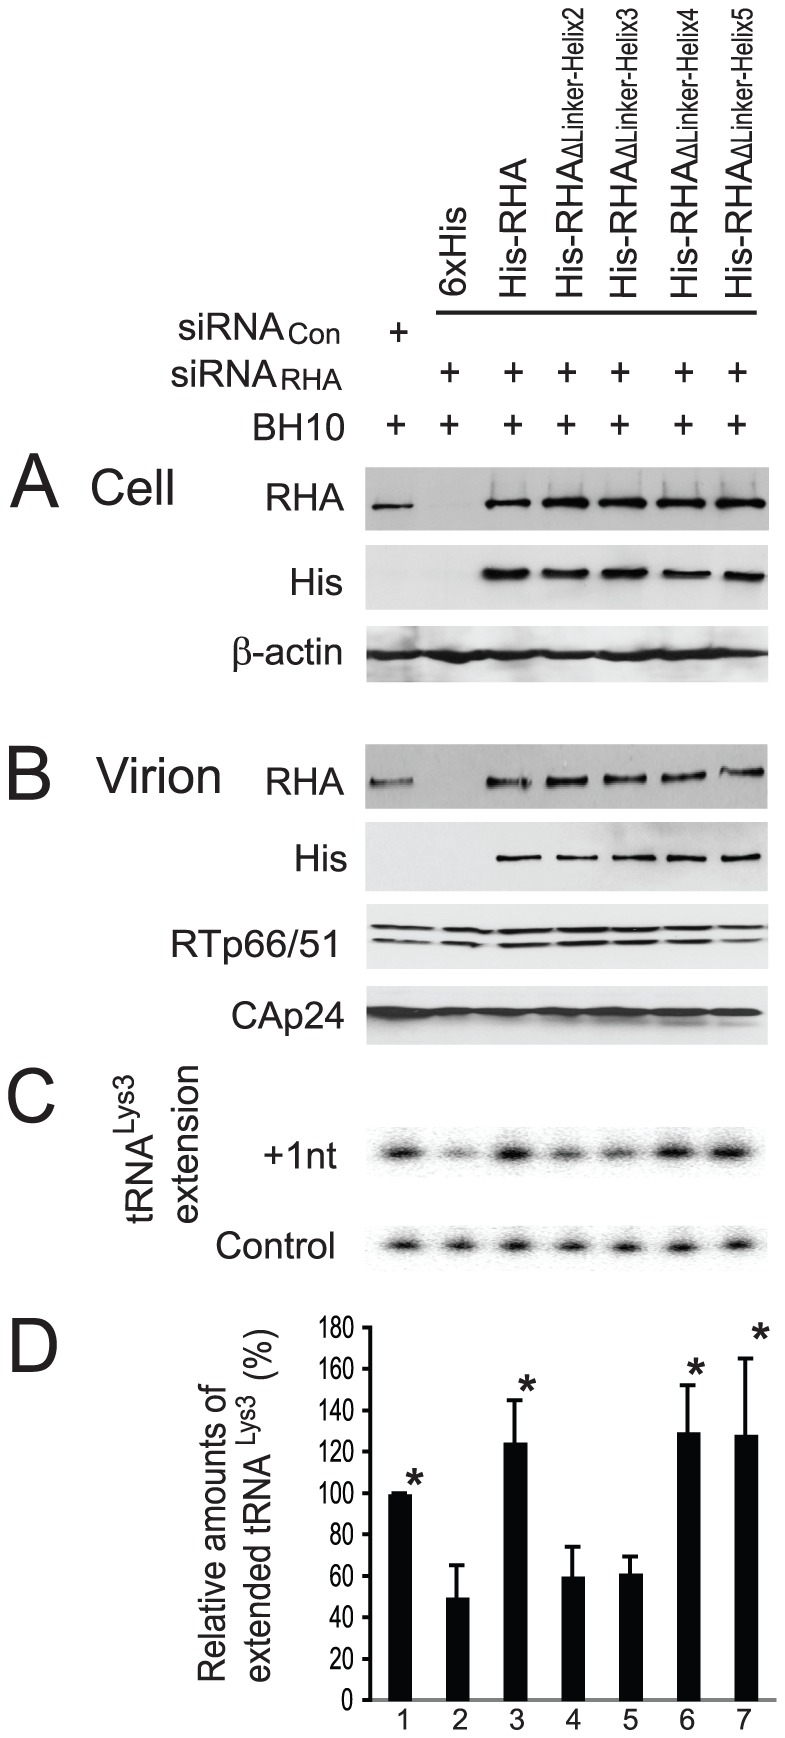 Ability of mutant RHAs to promote the annealing of tRNA Lys3 to viral RNA. 293T cells were first treated with siRNA Con or siRNA RHA , and 16 hours later, were cotransfected with SVC21.BH10 and a plasmid expressing either 6×His tag, or His-tagged wild-type or mutant RHAs. 48 hours later, extracellular viruses were purified and cells were lysed. (A) Western blots of cell lysates probed with antibodies to RHA, His tag, or β-actin. (B) Western blots of viral lysates, containing equal amount of CAp24, probed with antibodies to RHA, His tag, CAp24, or RTp66/p51. (C) One nucleotide extension assay (+1 nt extension). Total viral RNA was isolated from purified HIV-1 particles, and tRNA Lys3 annealed to viral RNA in vivo was extended by 1 nt ([ 32 P]-dCTP), using HIV-1 reverse transcriptase. The extended tRNA Lys3 products are resolved by denaturing 1D PAGE, and visualized using a PhosphorImager. The control gel represents the +1 nt extension of a DNA primer annealed in vitro to viral RNA downstream of the tRNA Lys3 binding site, and is used to show that approximately equal amounts of viral RNA were used in each extension reaction. (D) The values of the +1 nt extended tRNA Lys3 products were quantitated using a PhosphorImager, normalized to the values obtained with virions produced from siRNA Con -treated cells (lane 1), and are presented graphically as a percentage. Shown are the mean values ± standard deviations of 3 independent experiments. *, P